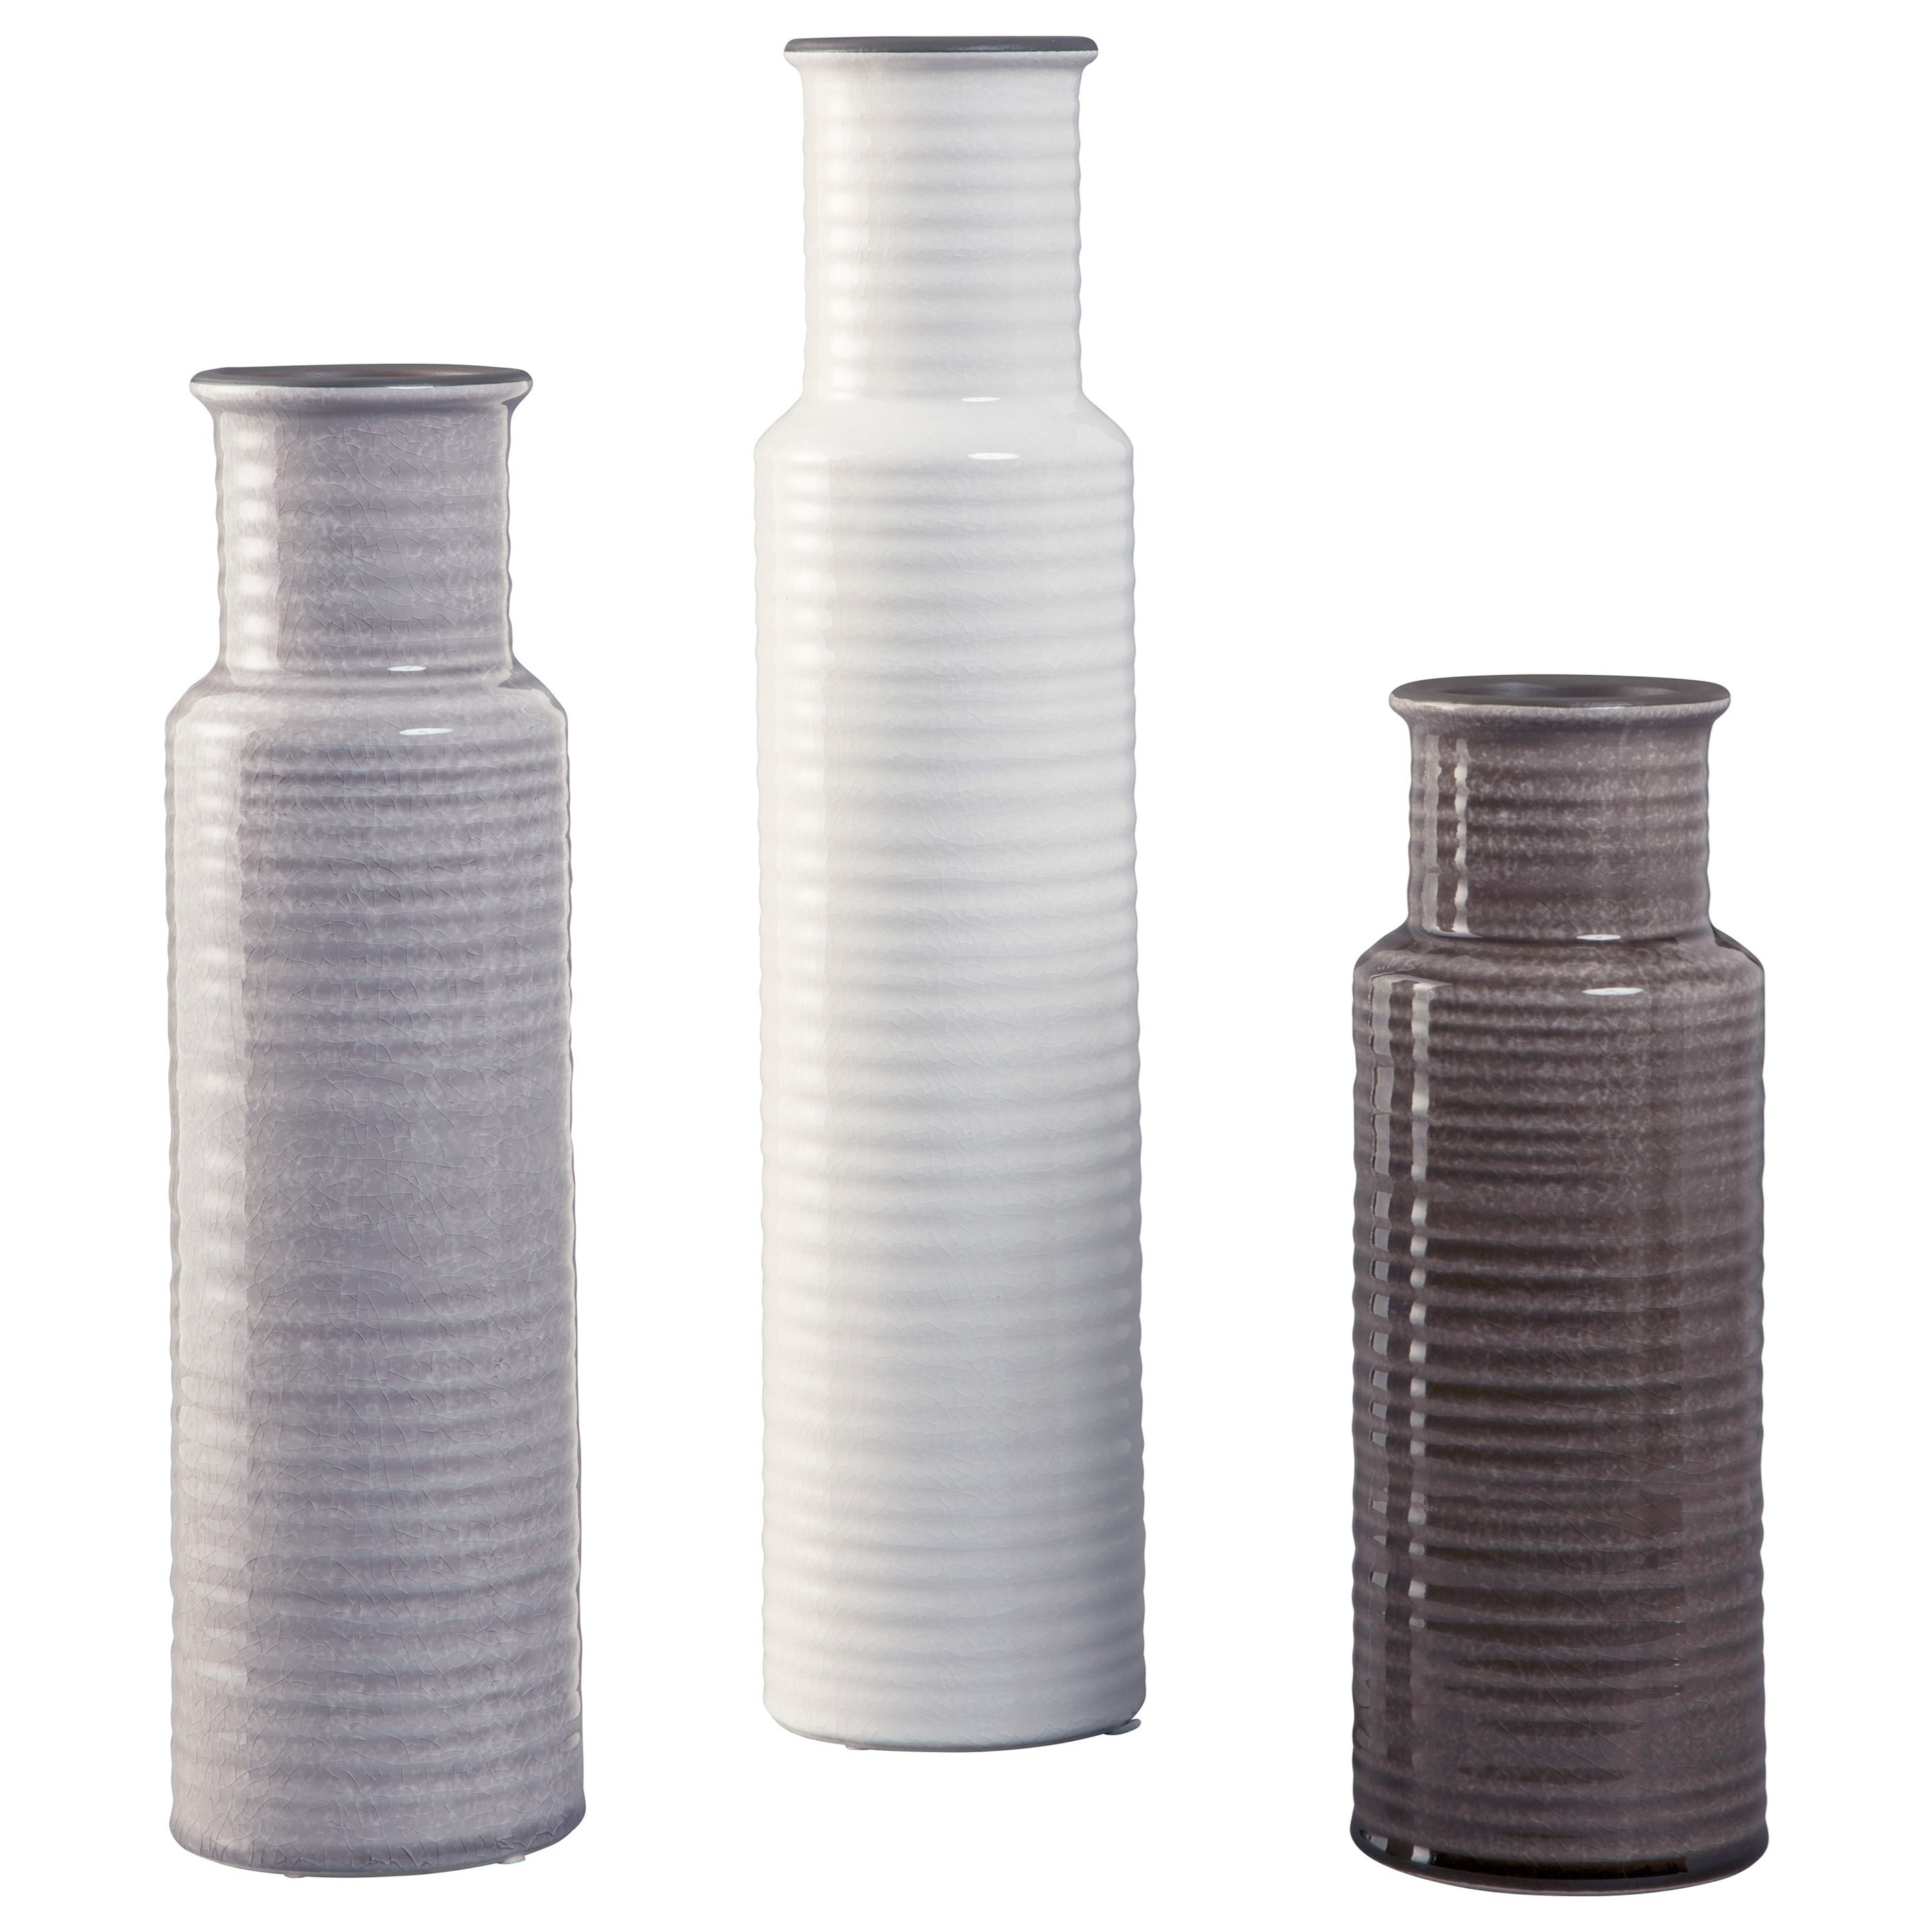 Deus Gray/White/Brown Vase Set